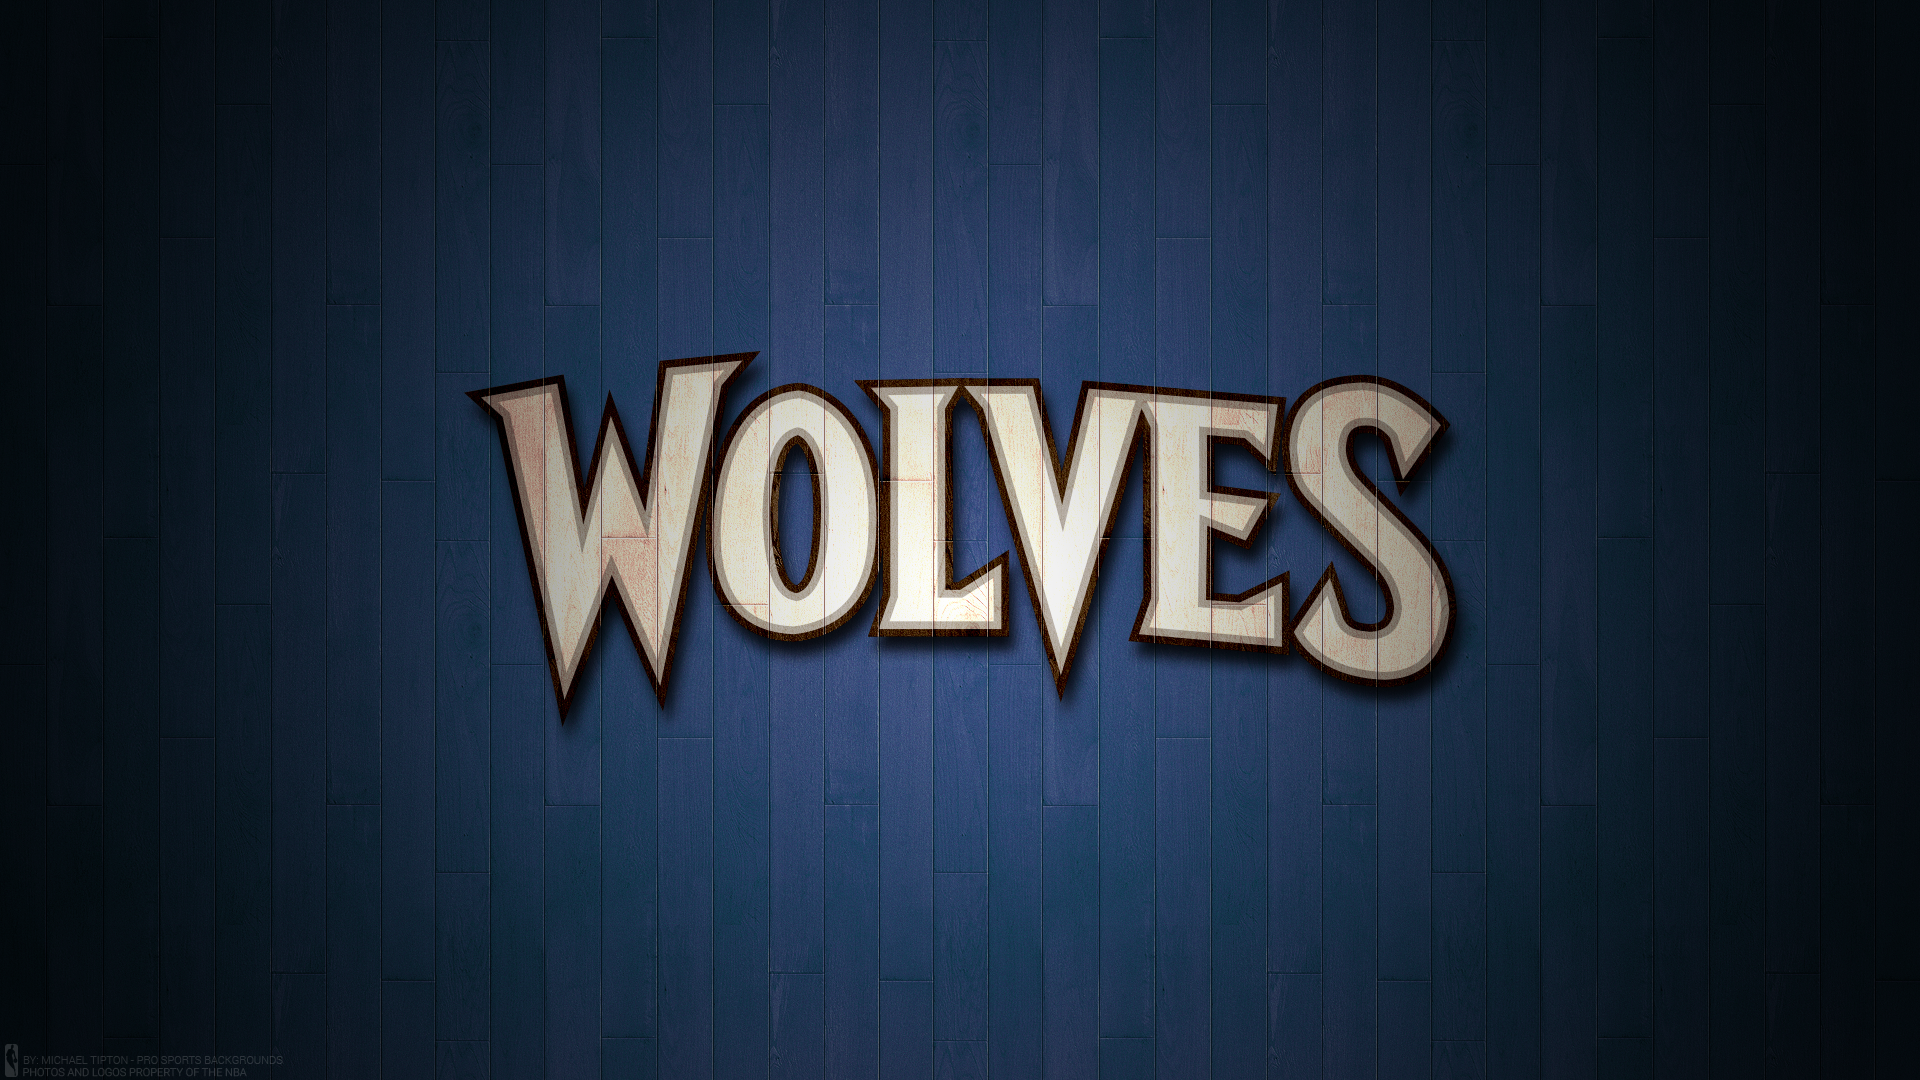 2017 Minnesota Timberwolves Wallpapers - PC |iPhone| Android